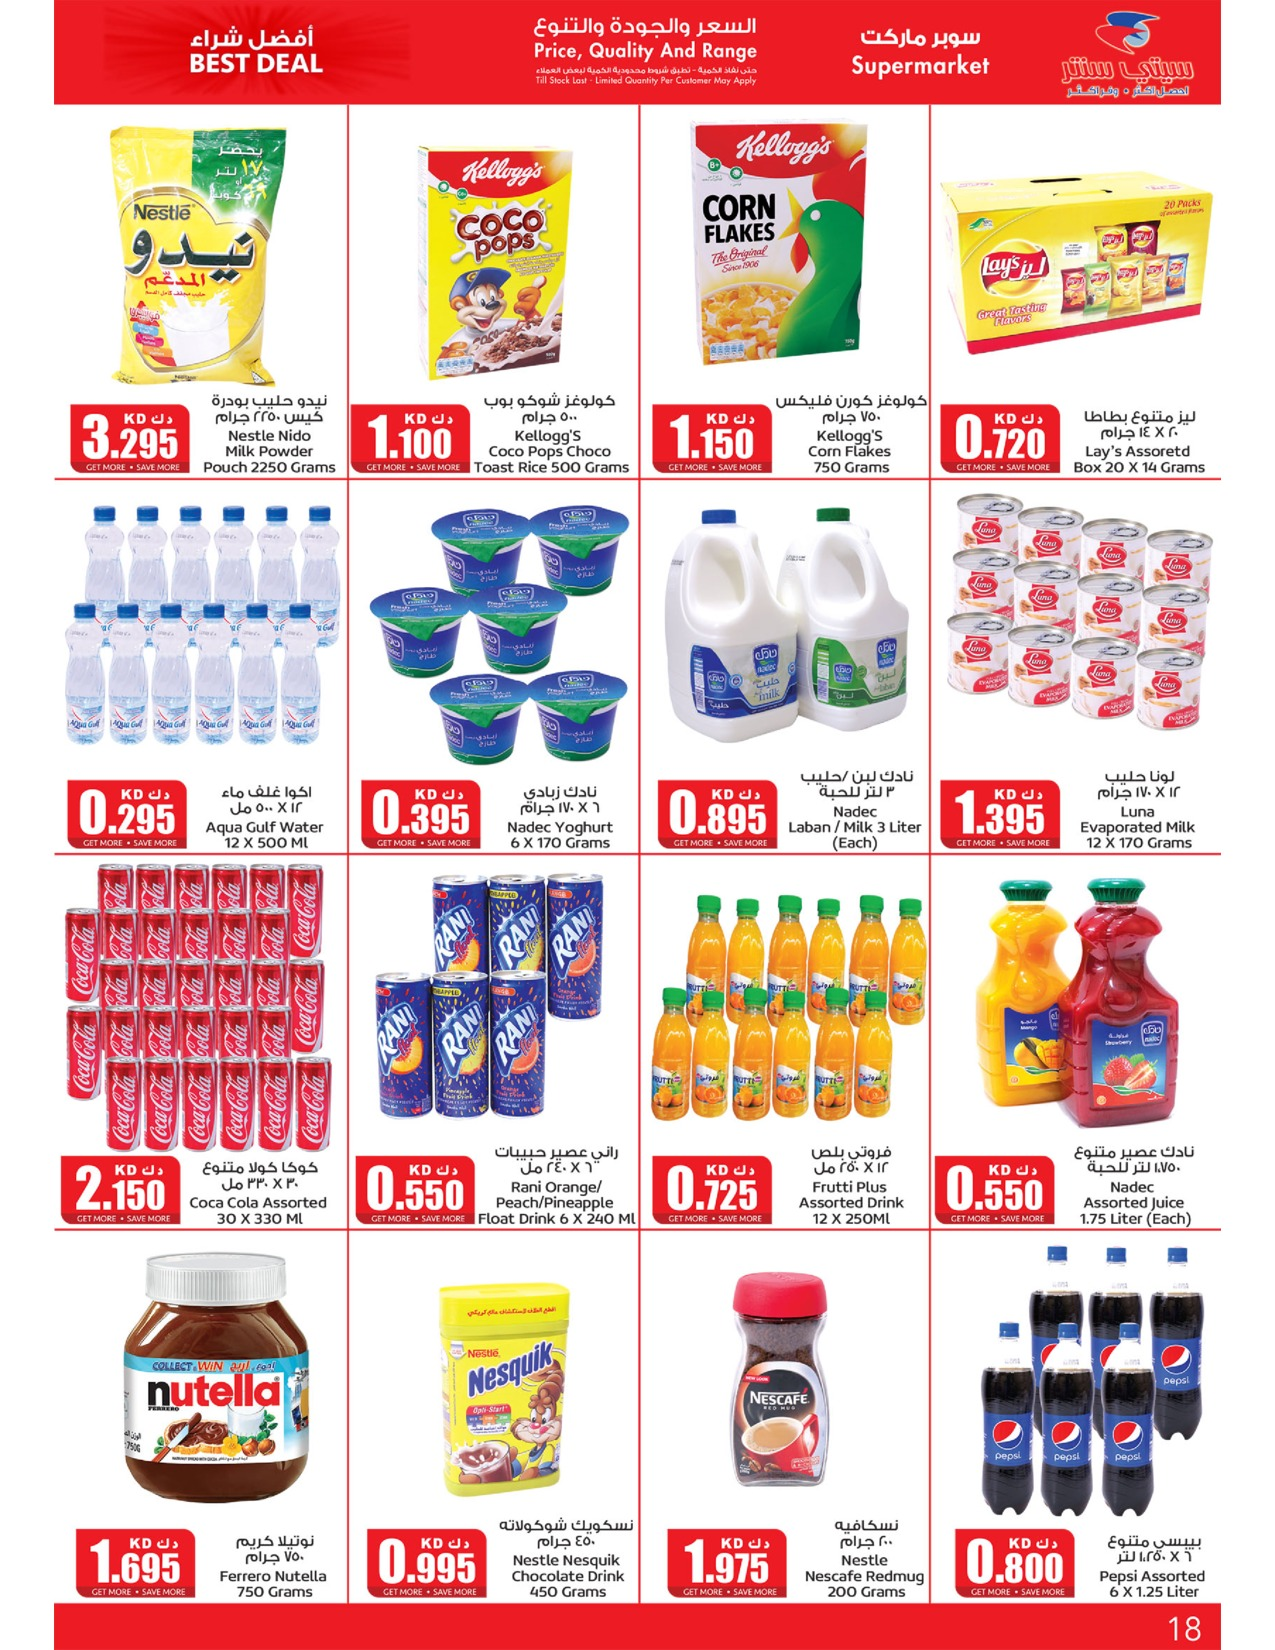 sale-up-to-50-percent-from-19th-october---5th-november-2016-kuwait